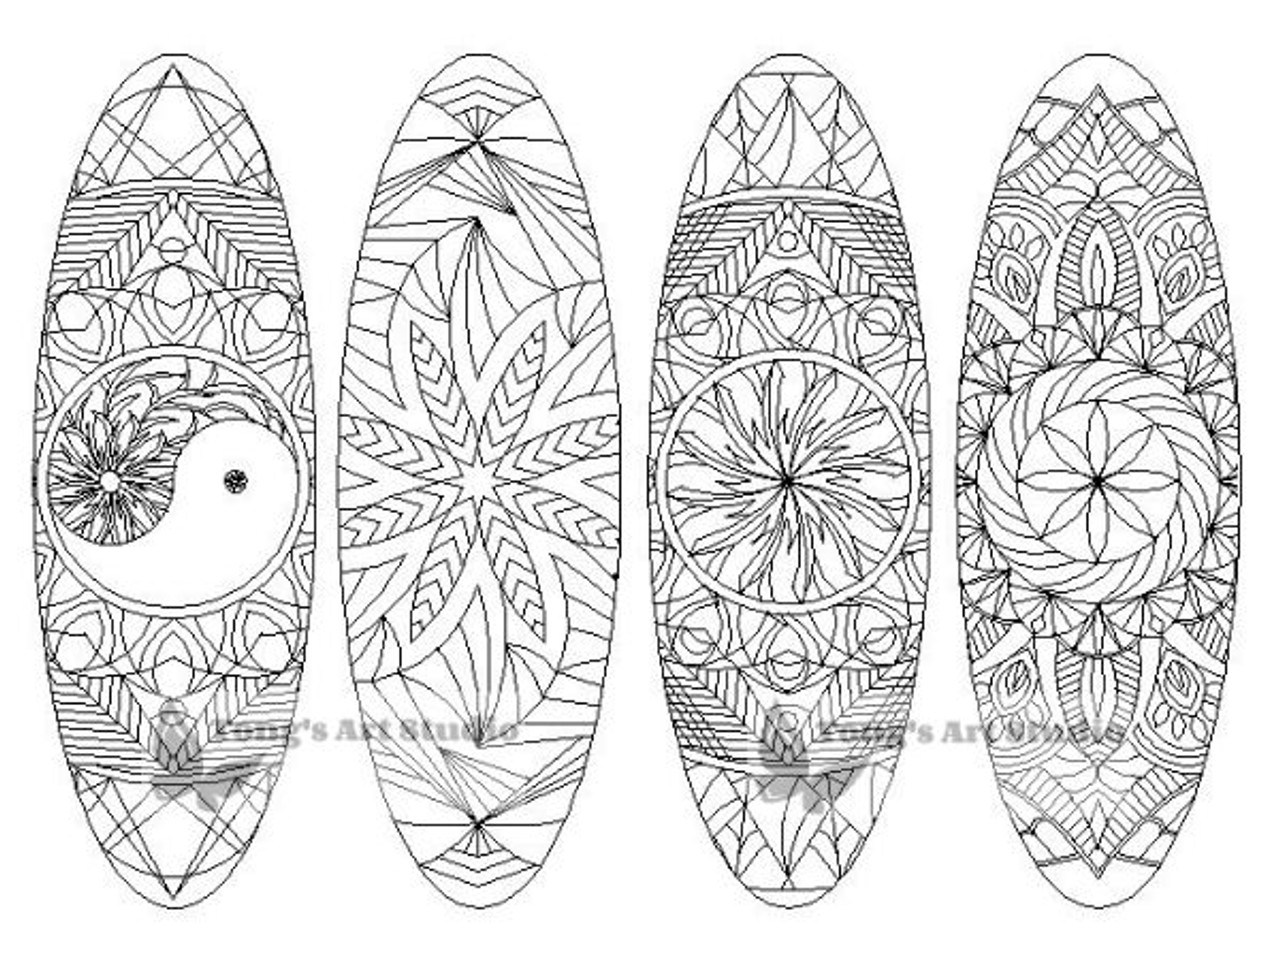 4 Printable Mandala Coloring Bookmarks-1-Oval